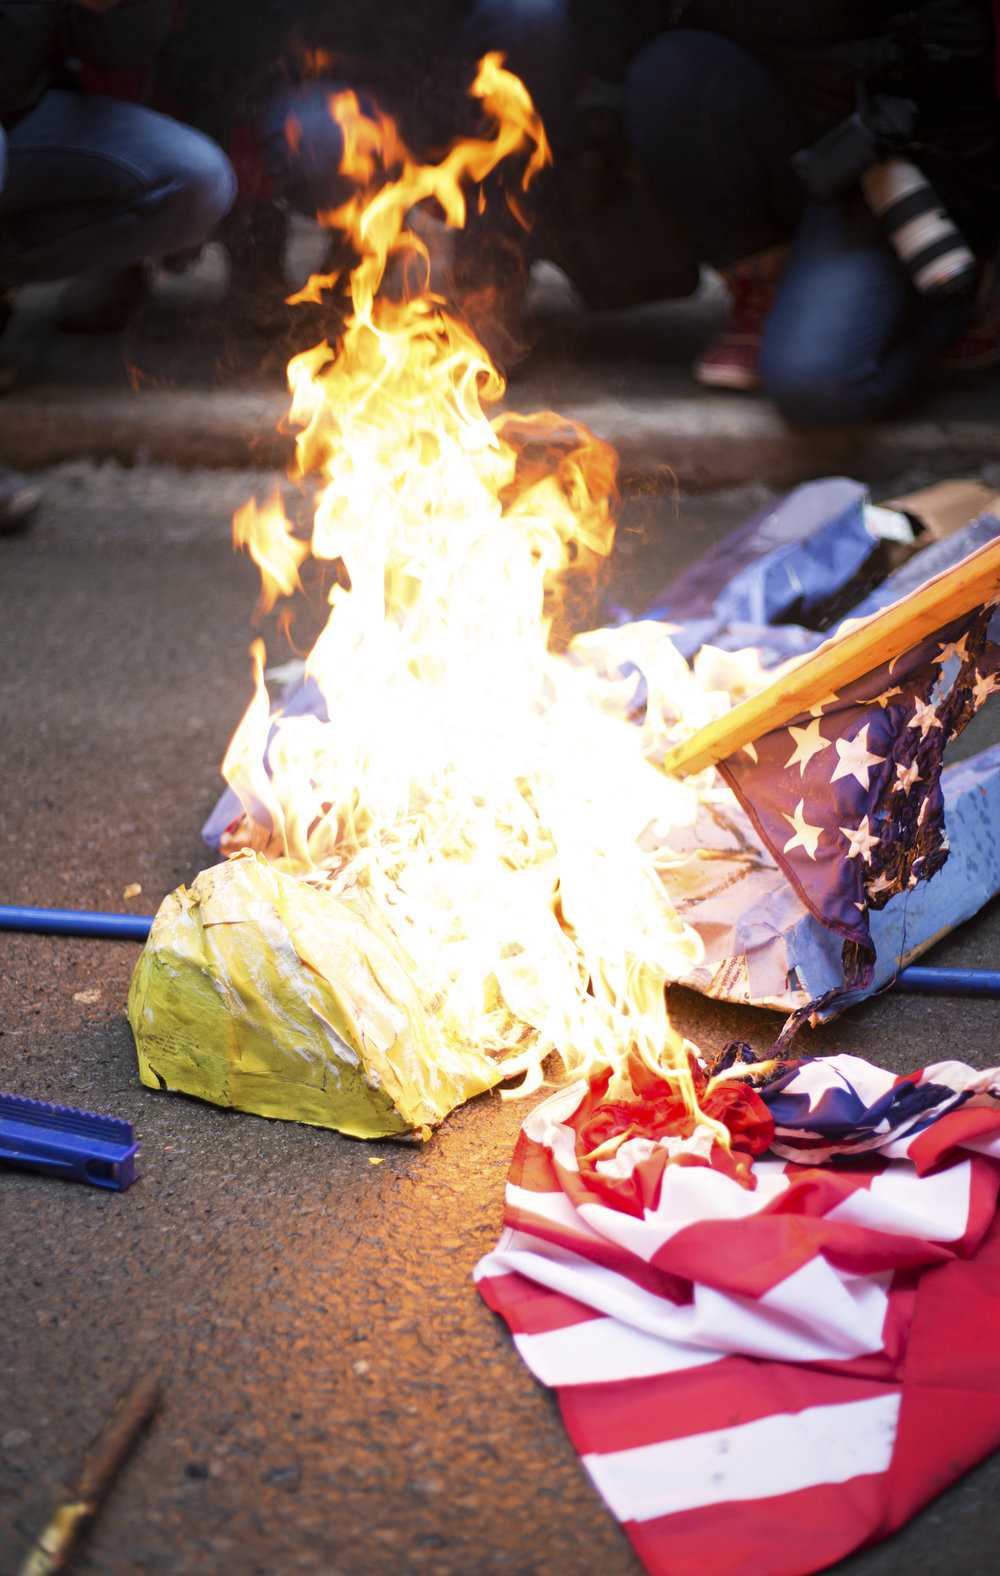 Burning Trump effigy and USA flag at a demonstration outside the US consulate in Montreal against the inauguration of Donald Trump to the presidency (January 20 2017)